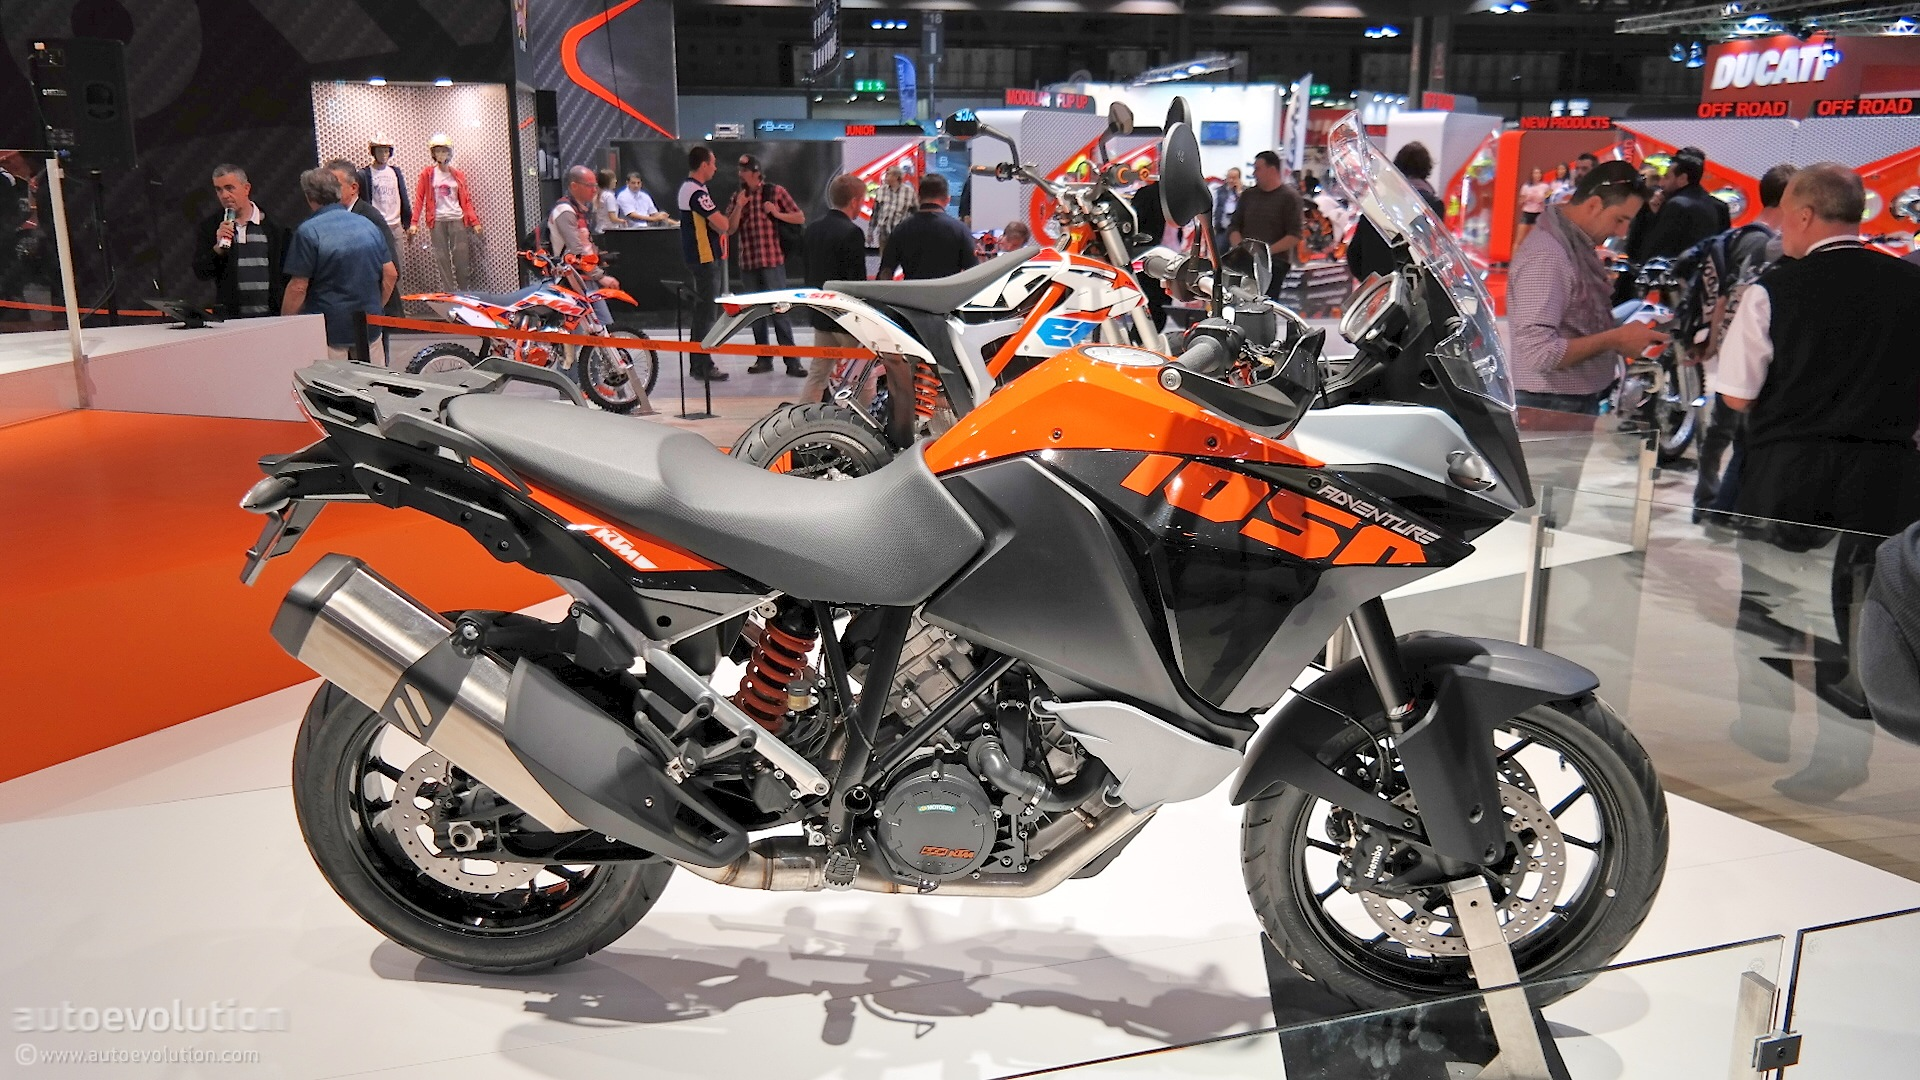 Car Engine Live Wallpaper 2015 Ktm 1050 Adventure Is Light And Maneuverable At Eicma